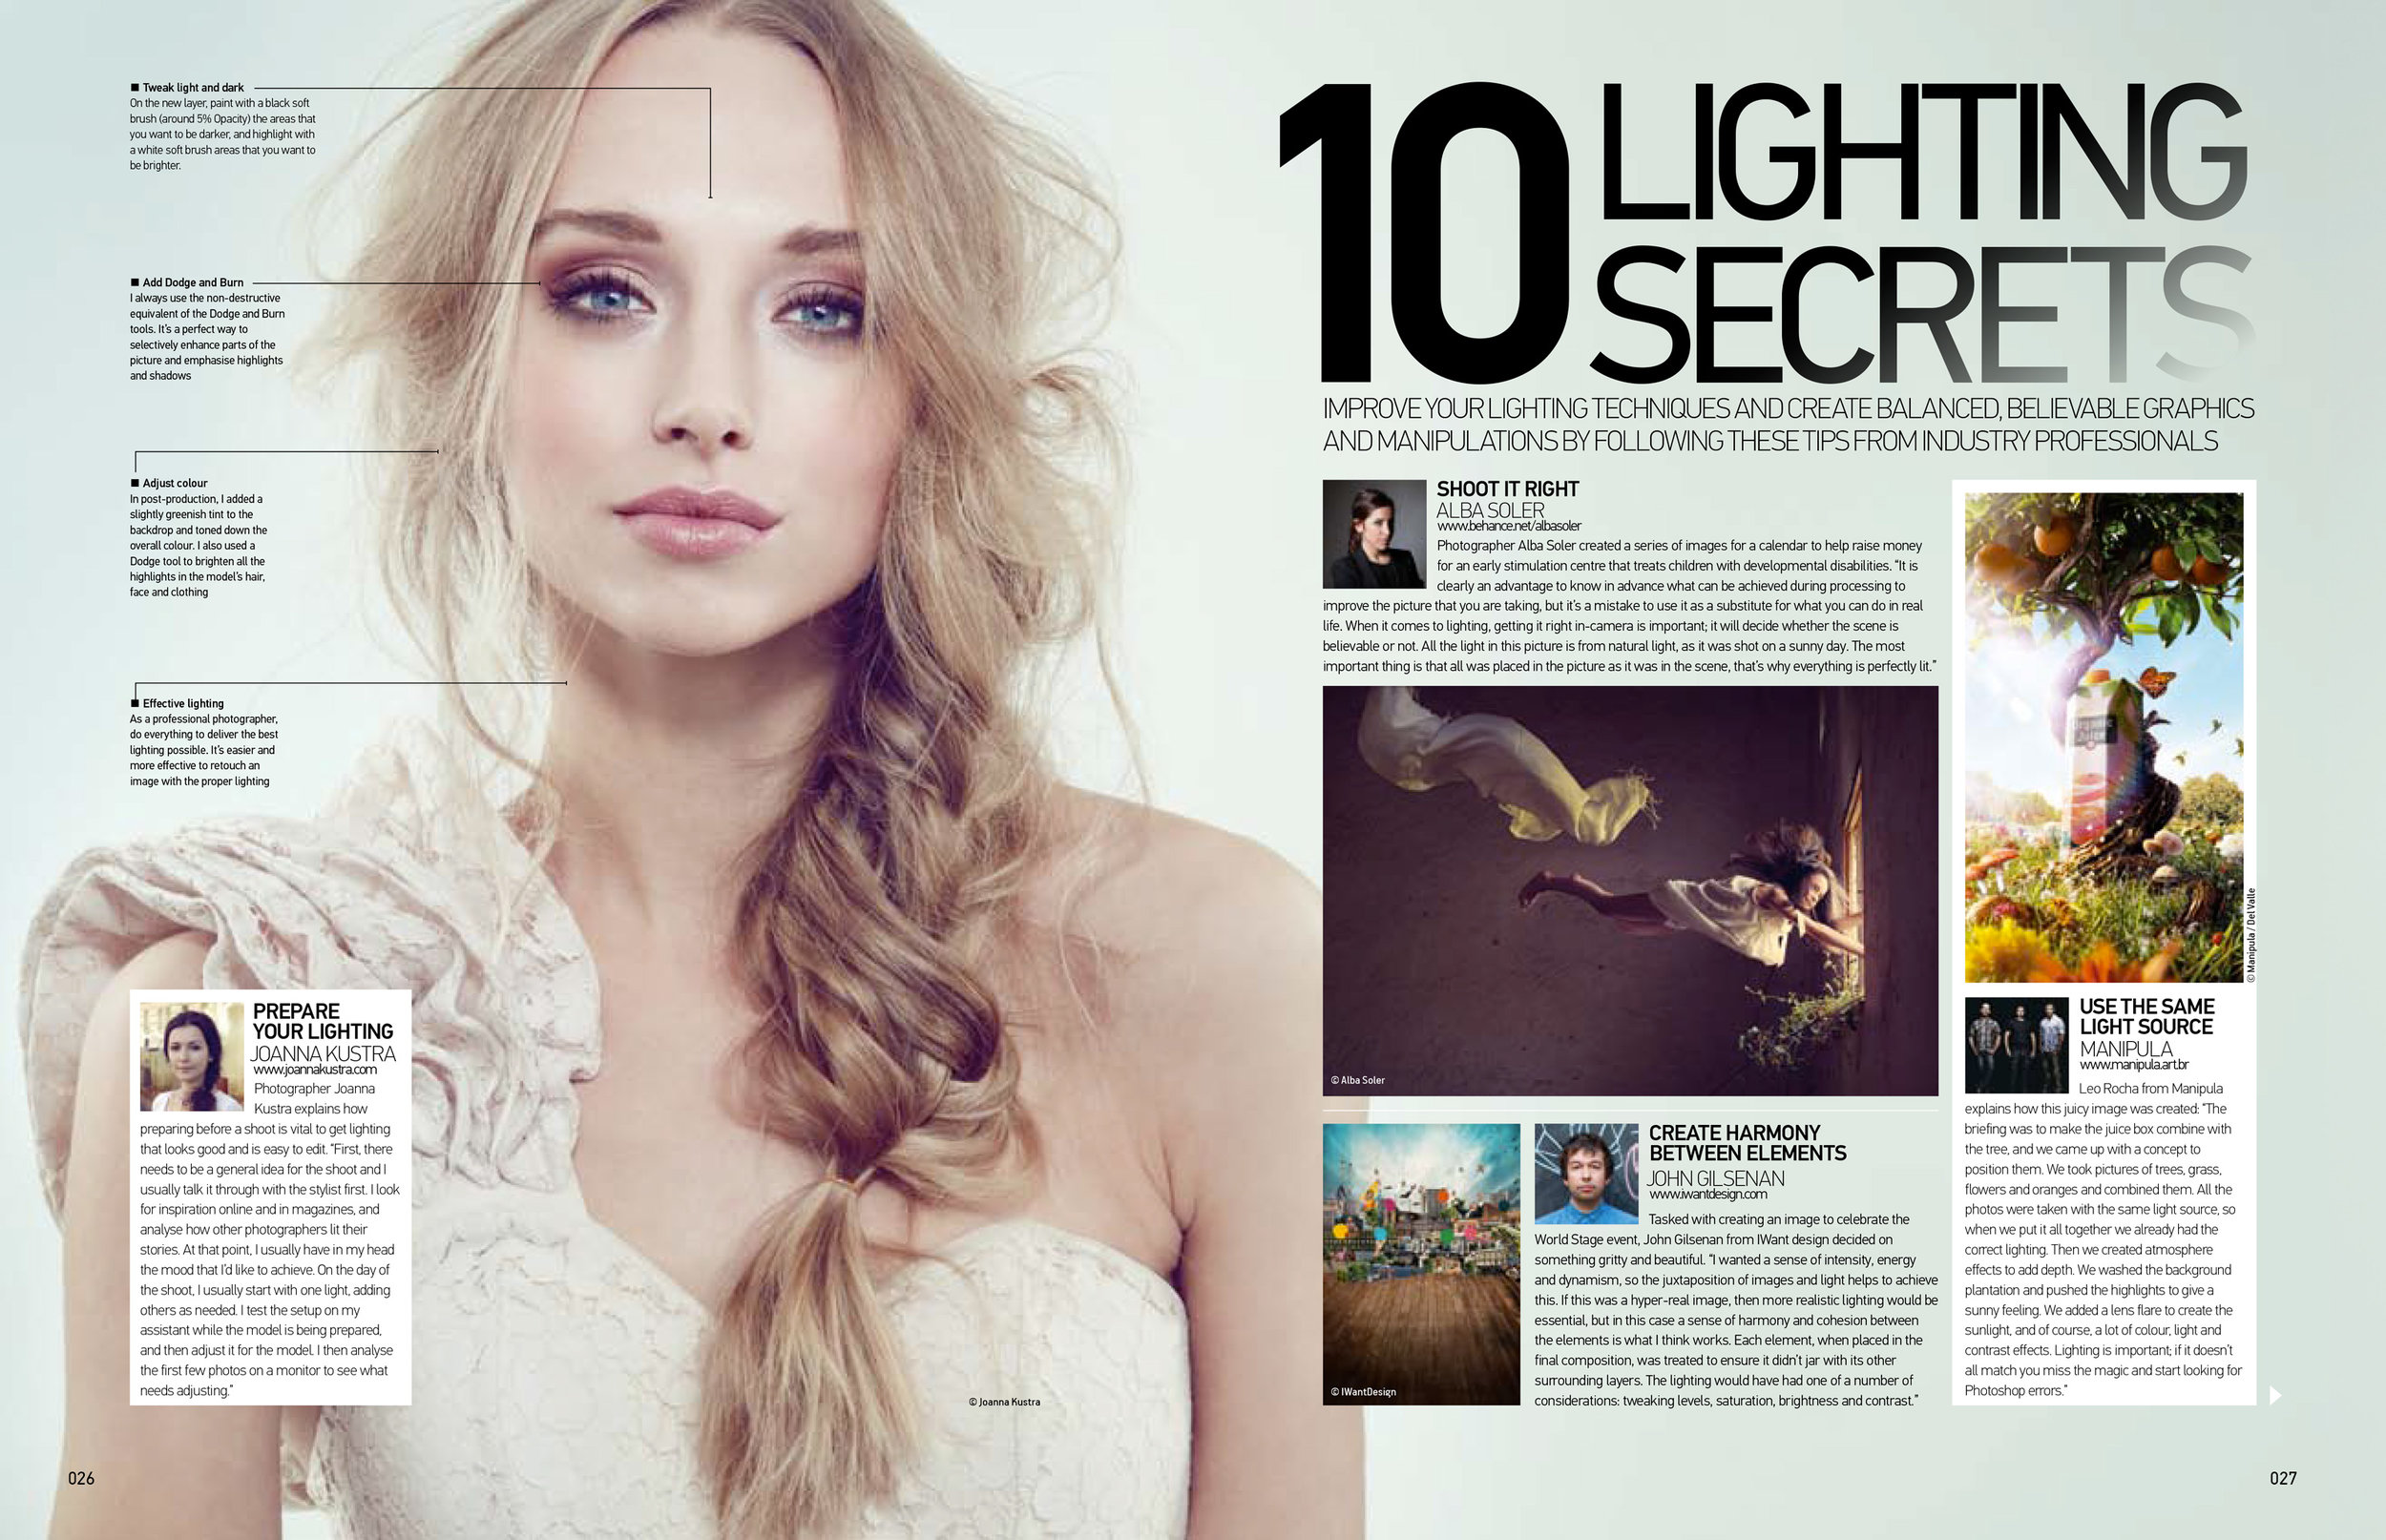 Advanced photoshop lighting secrets article Part 1